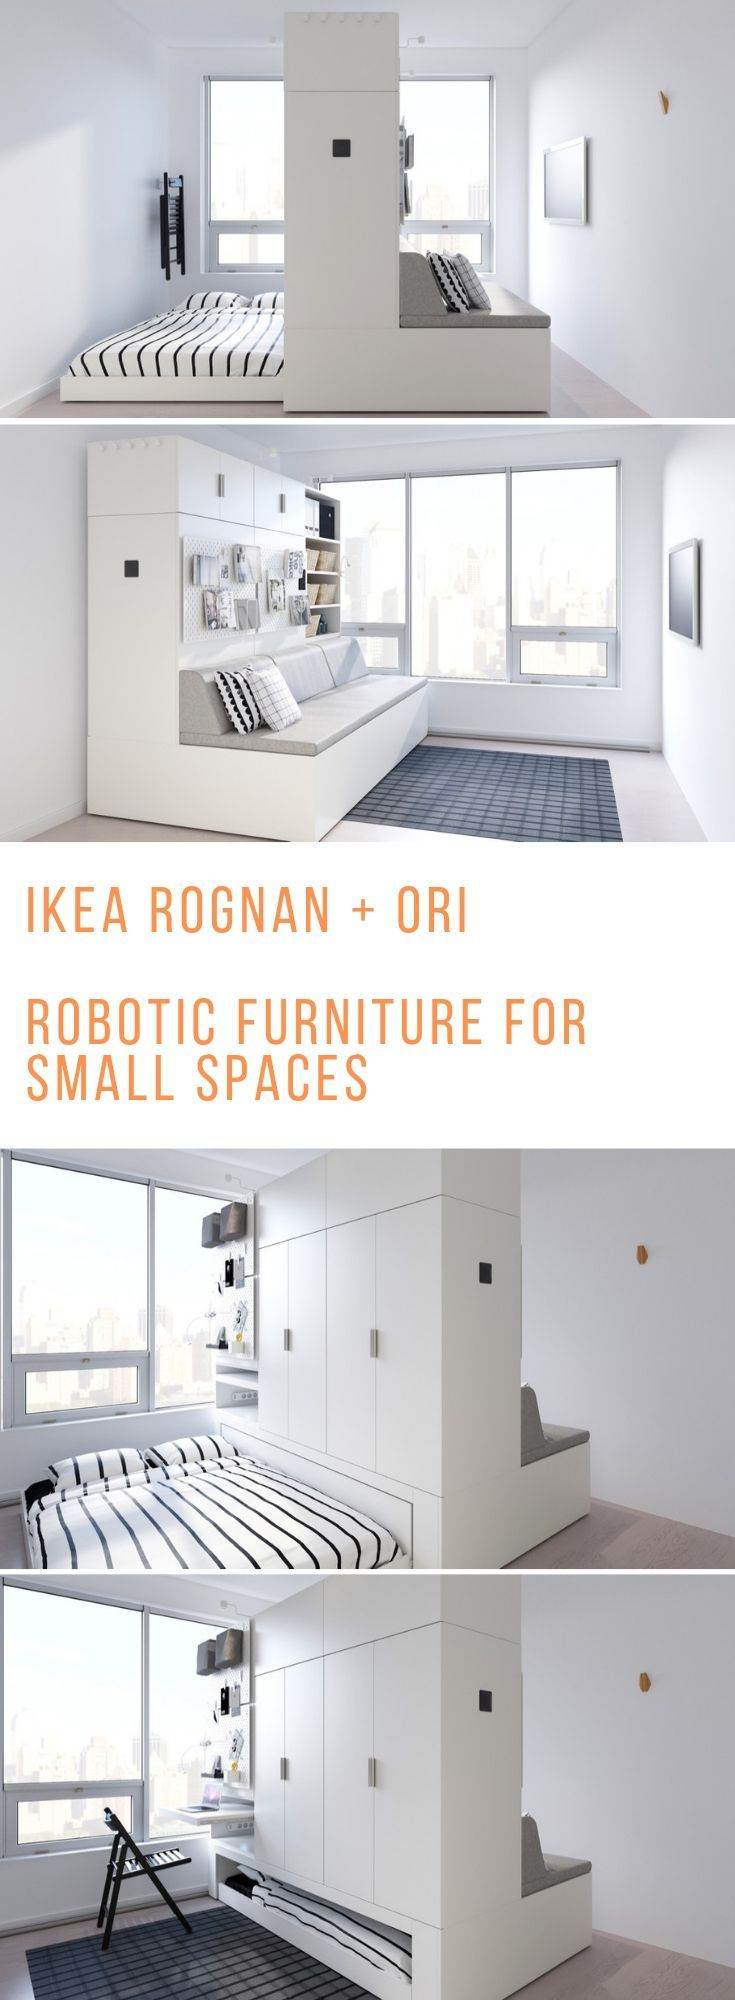 Robotic Furniture IKEAs new big thing for tiny spaces Shape shifting robotic furniture that transform from living room to bedroom and back Perfect for small spaces tiny h...